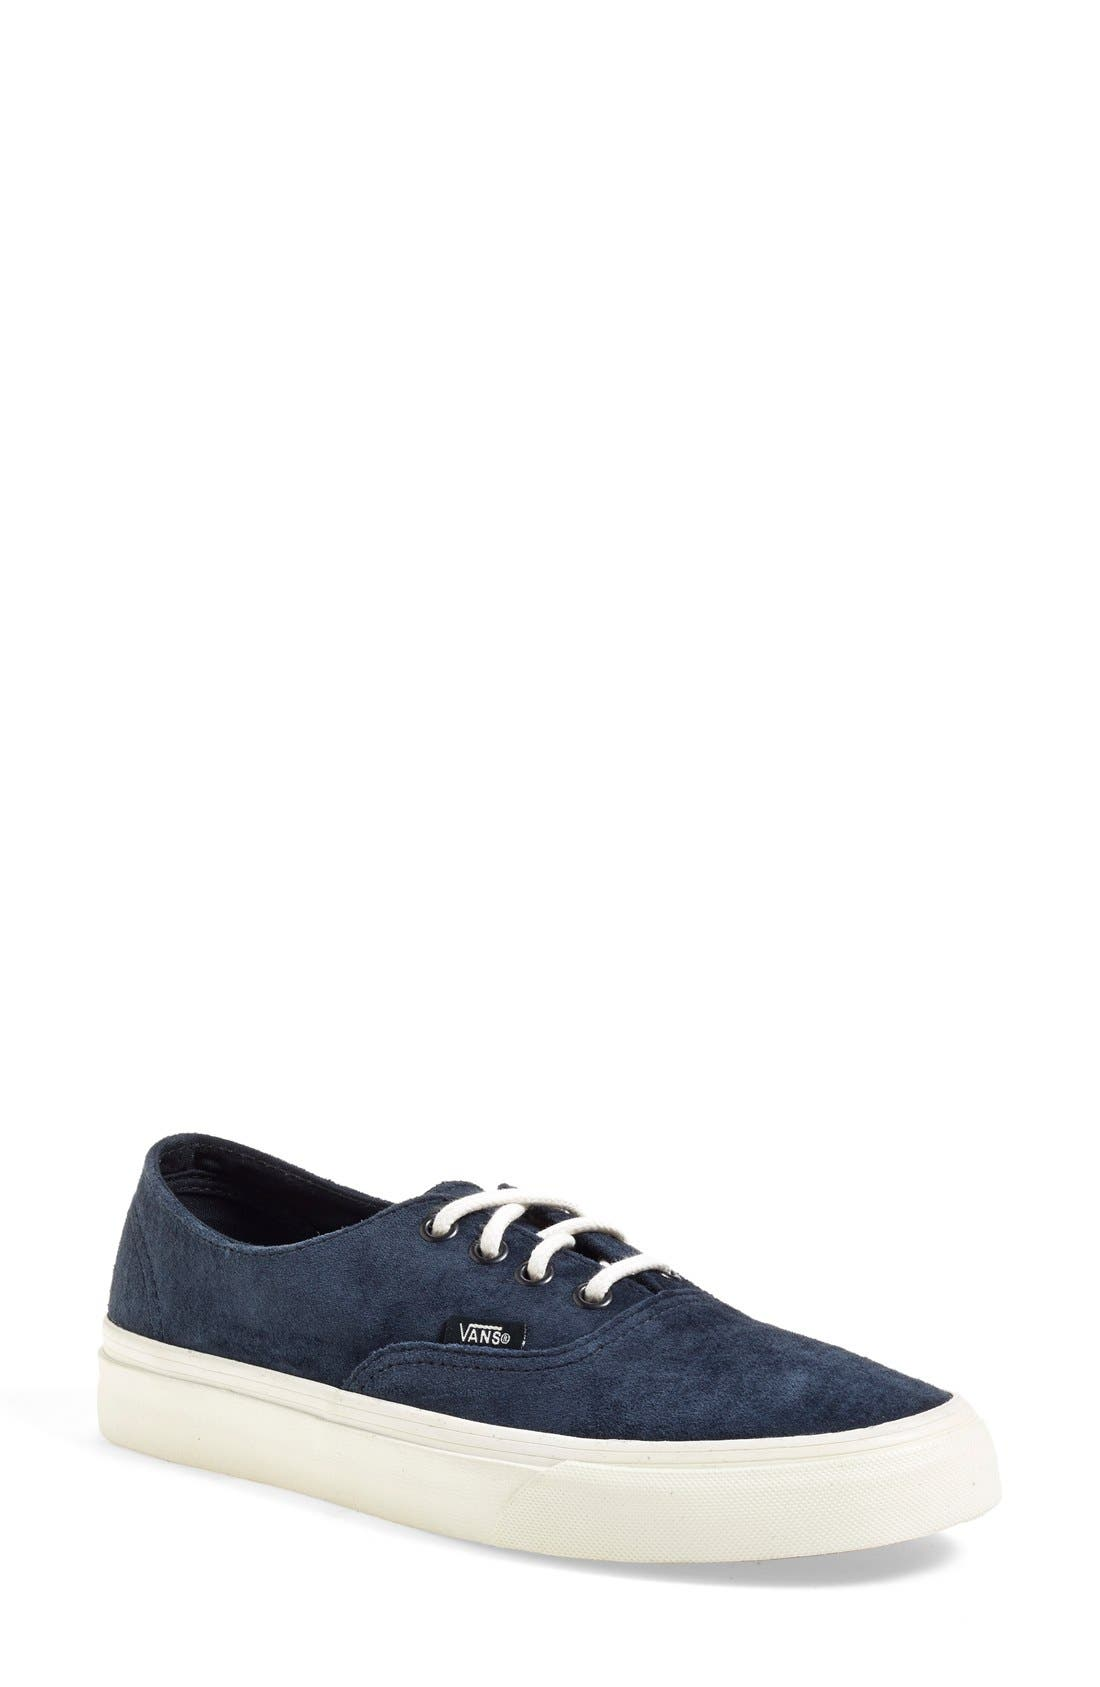 Alternate Image 1 Selected - Vans 'Authentic - Era Decon CA' Sneaker (Women)